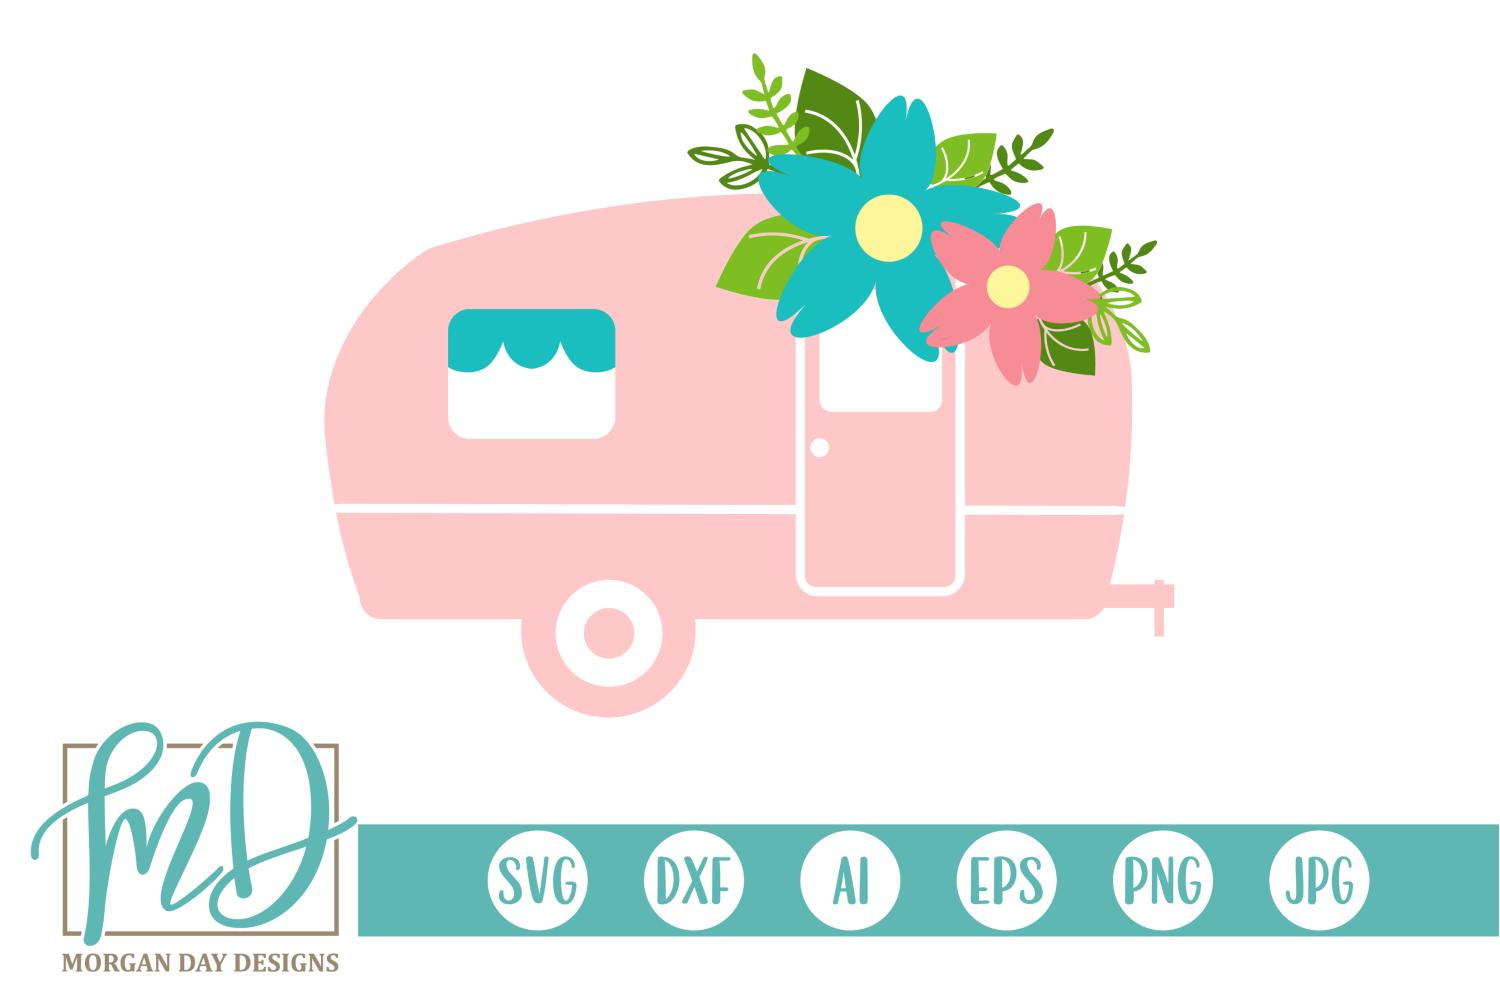 Download Free Floral Camper Graphic By Morgan Day Designs Creative Fabrica for Cricut Explore, Silhouette and other cutting machines.